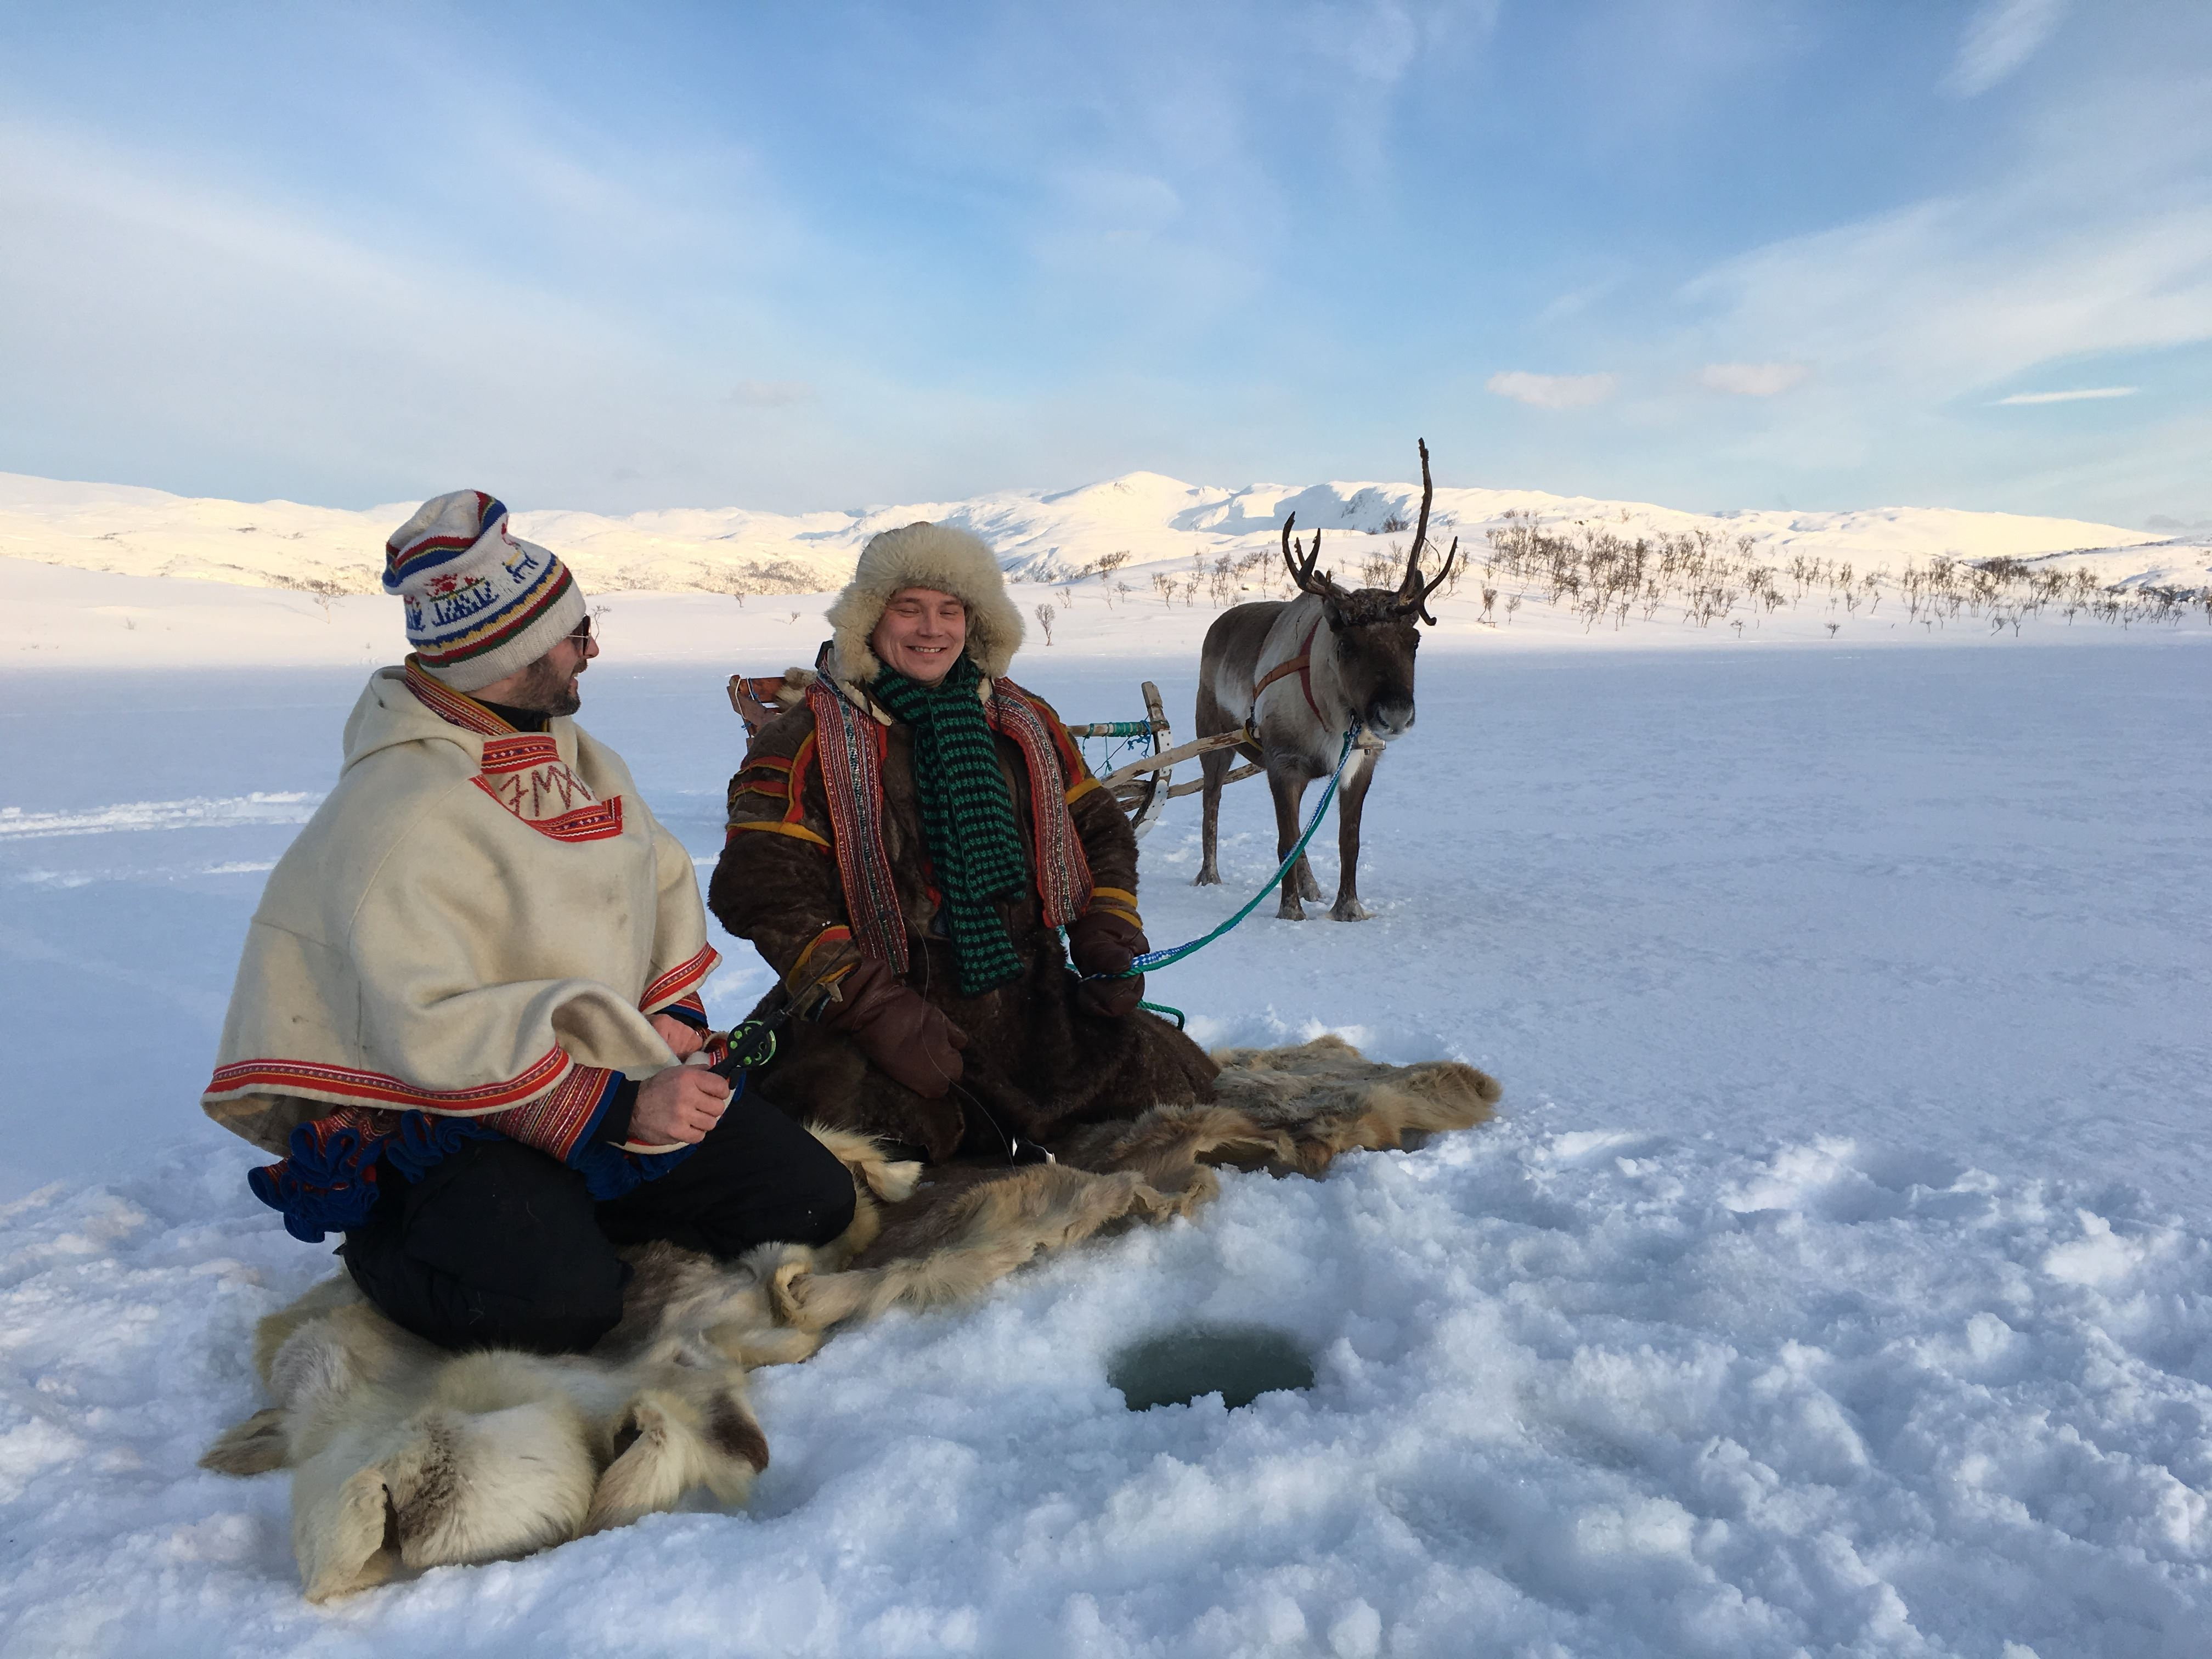 Ice Fishing at the Dankarvåg Nature Reserve– Sami Adventure